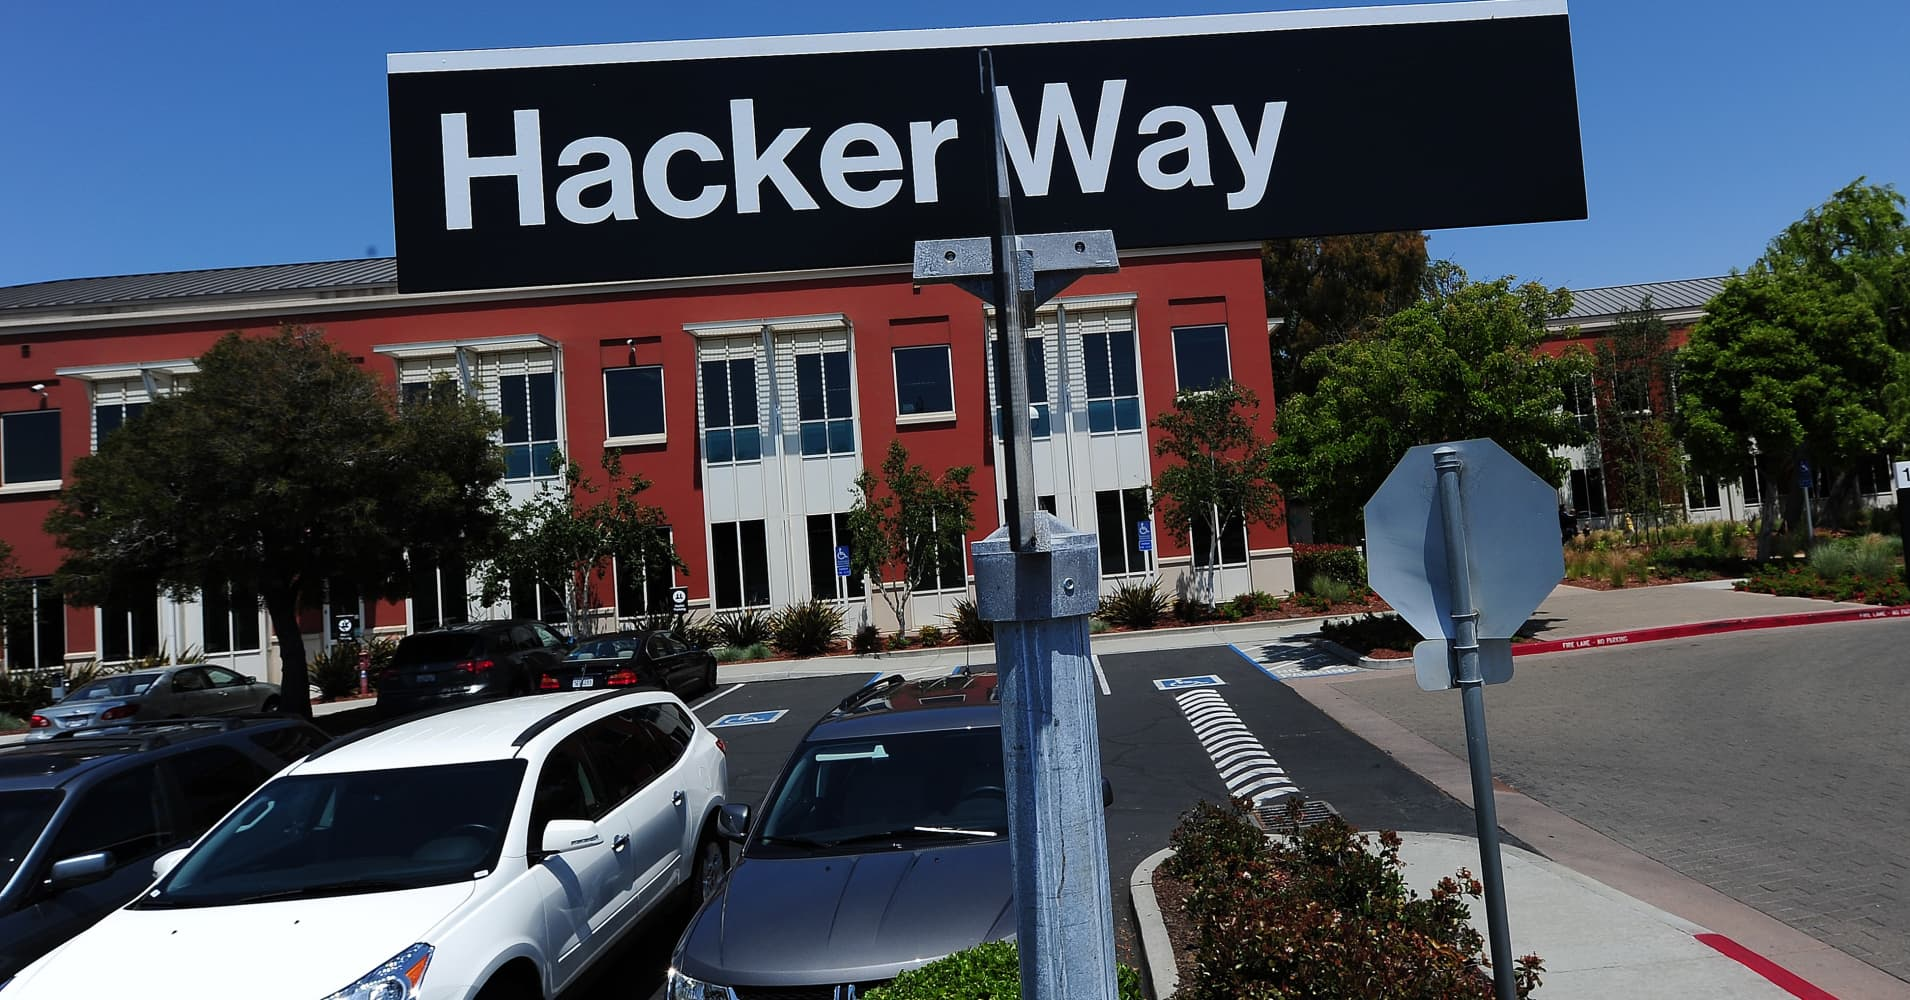 street sign reading 'Hacker Way' is seen in the parking lot of the Facebook headquarters in Menlo Park, California.